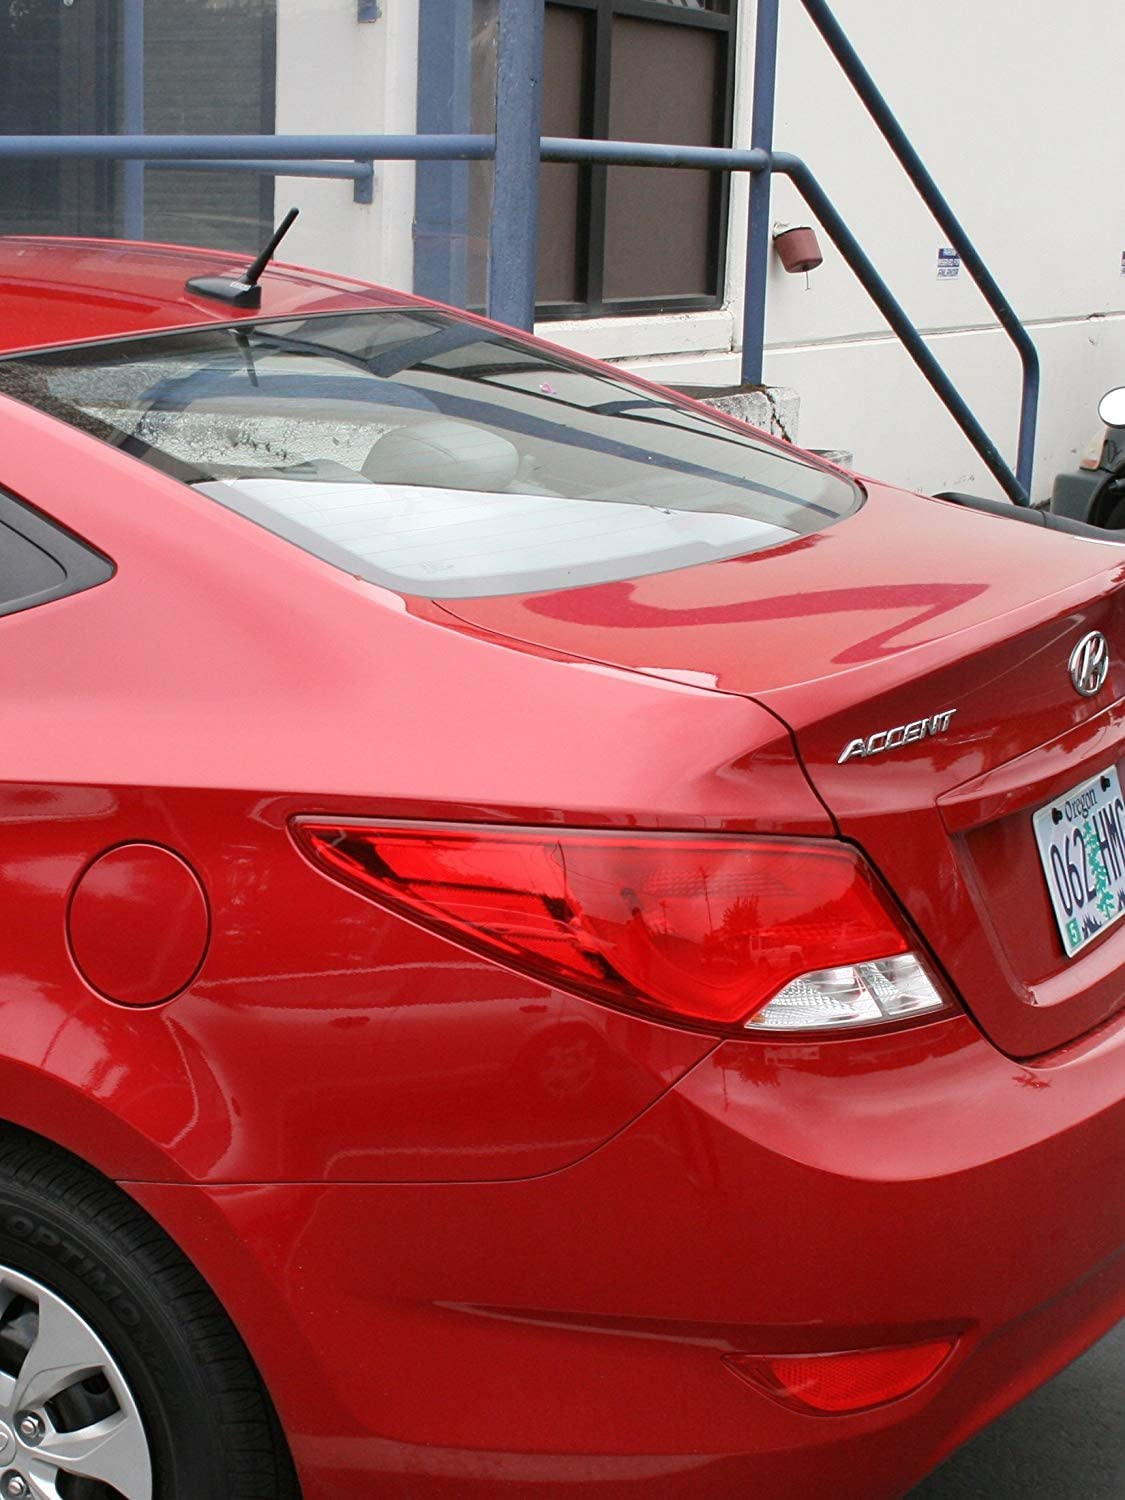 CravenSpeed Stubby Antenna Replacement for the Hyundai Accent 2011-2019 4 inches